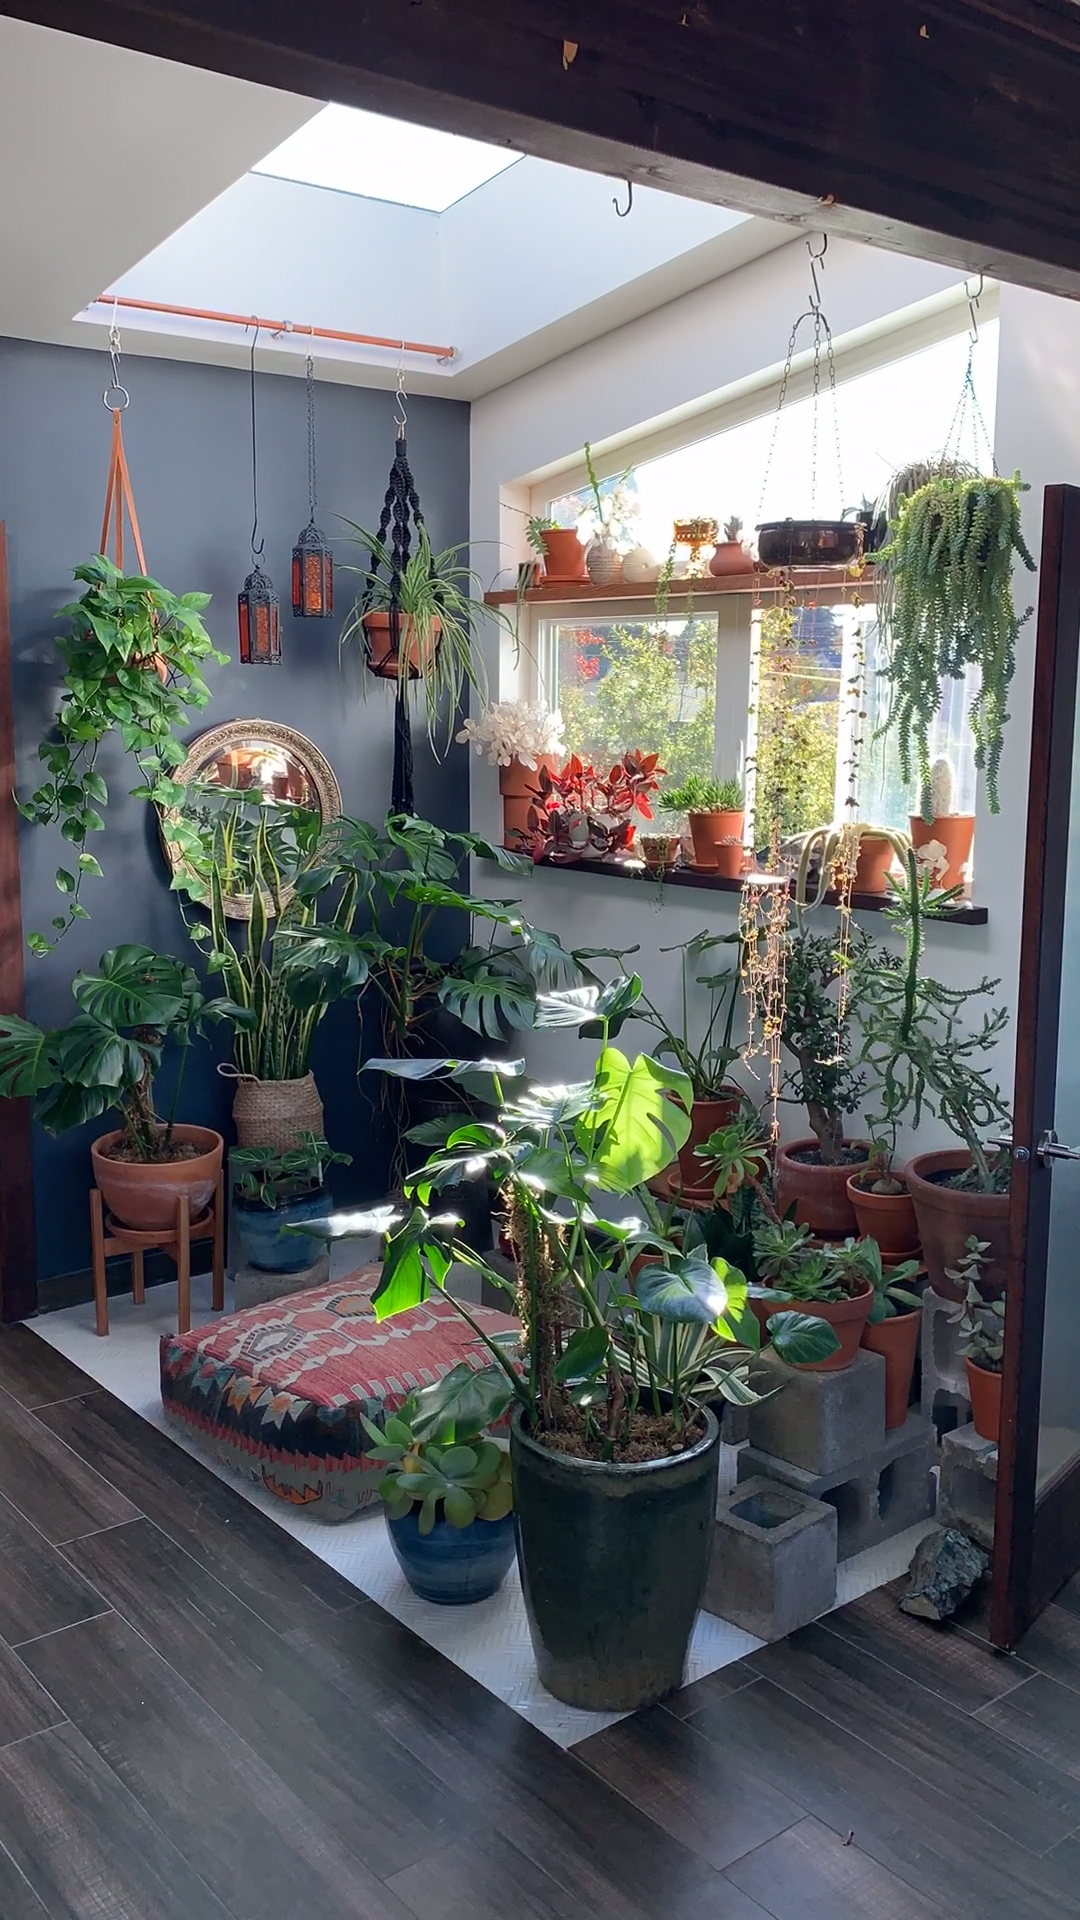 SELF CARE THROUGH CREATING A SACRED SPACE in 2020